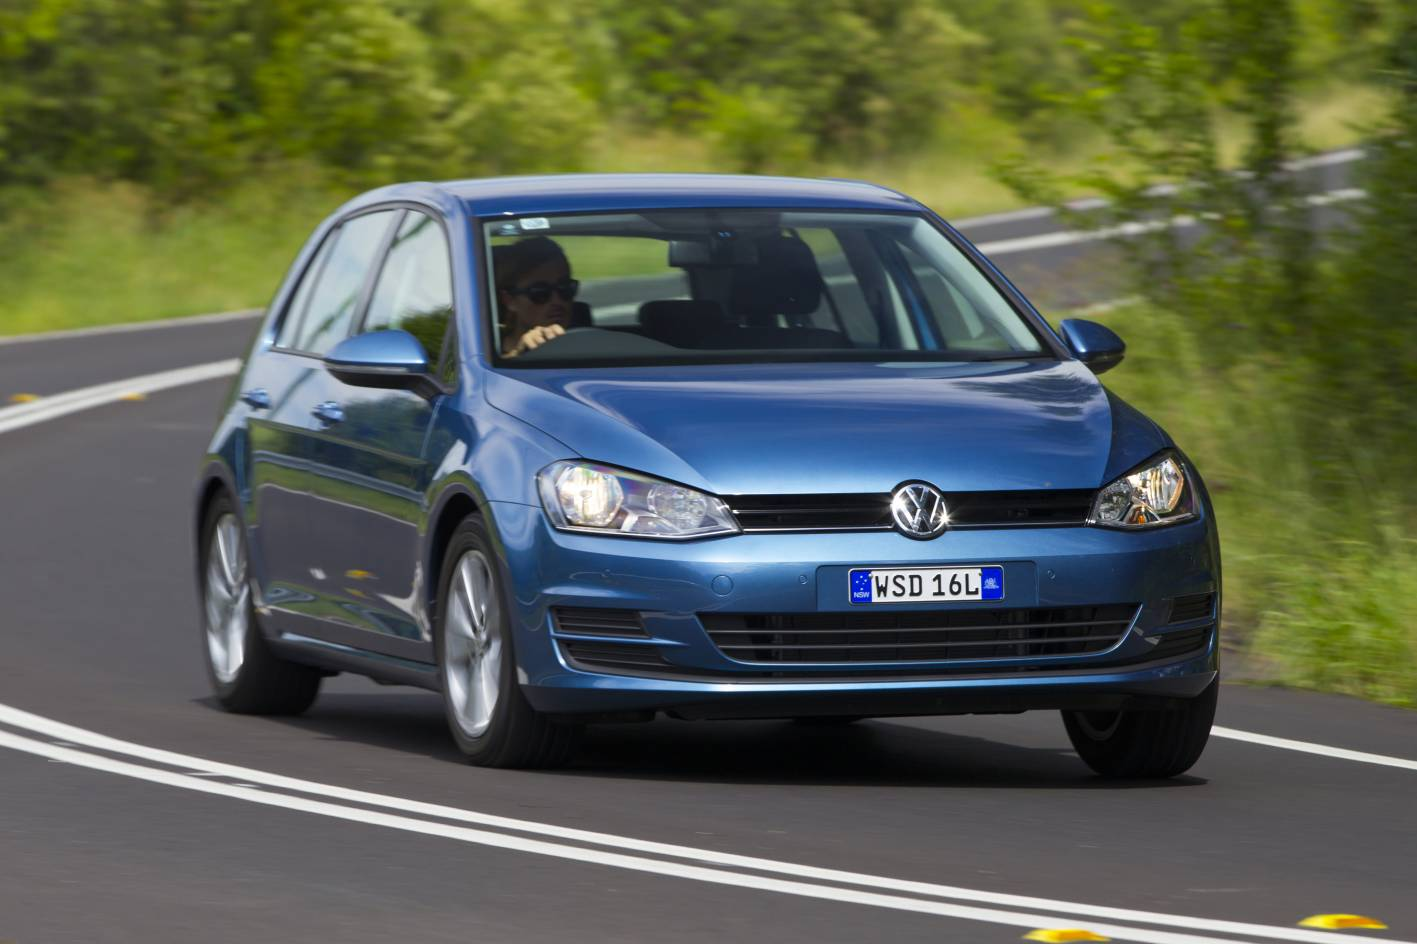 volkswagen cars news 2013 mk7 golf launched in australia. Black Bedroom Furniture Sets. Home Design Ideas